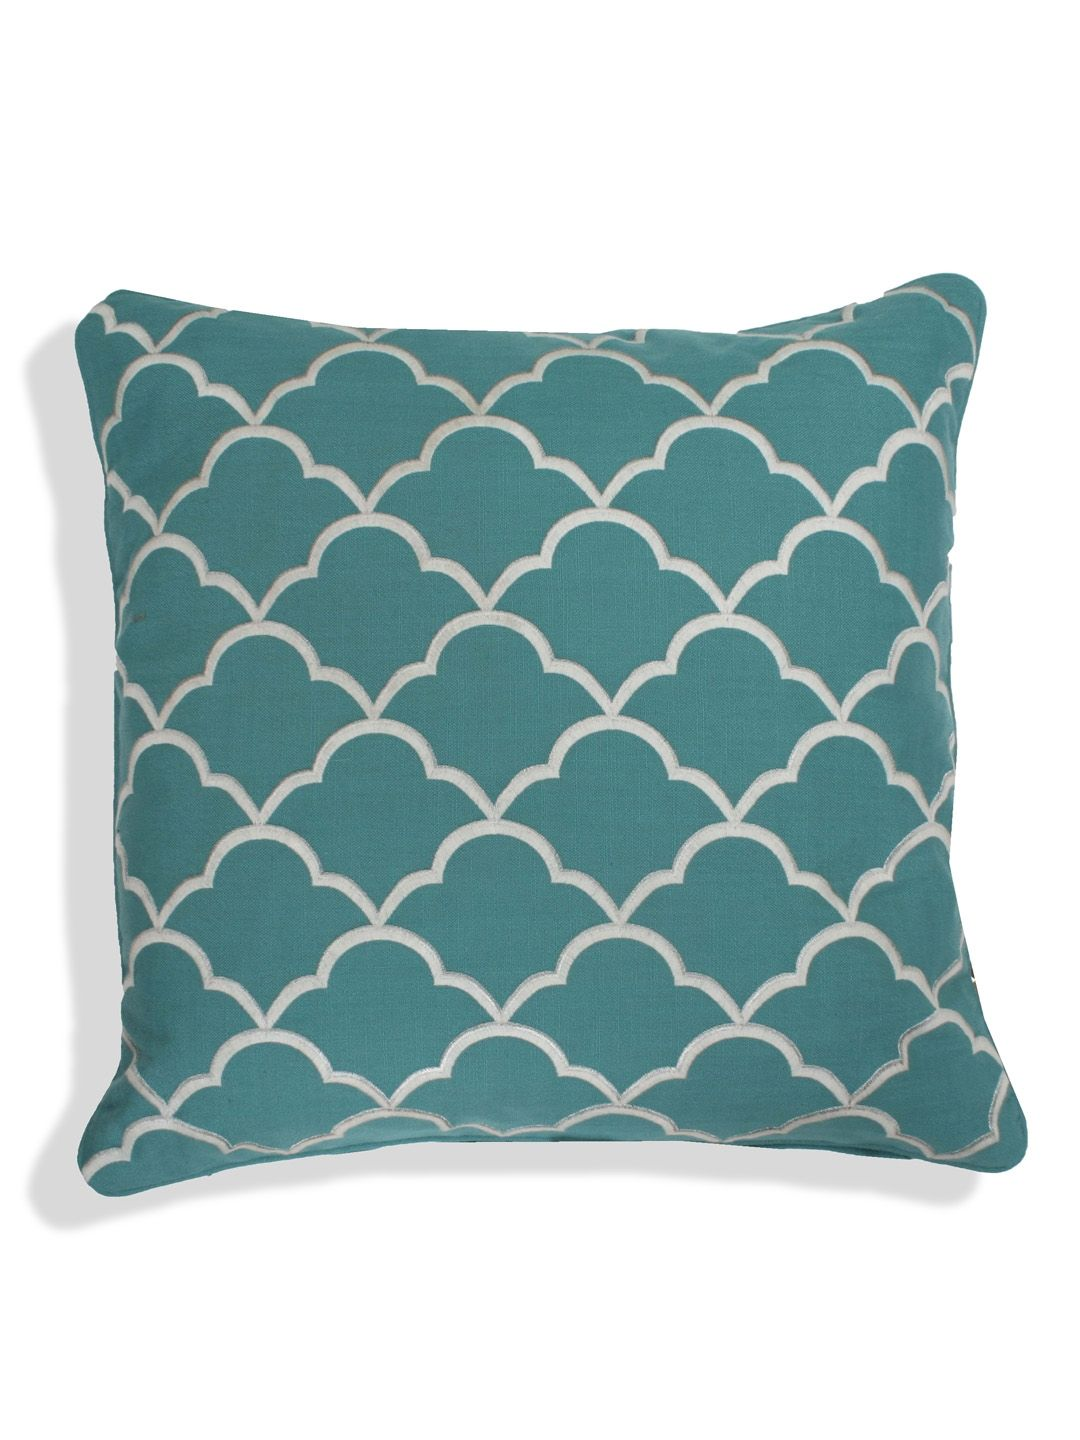 Faye Pillow by THRO by Marlo Lorenz at Gilt